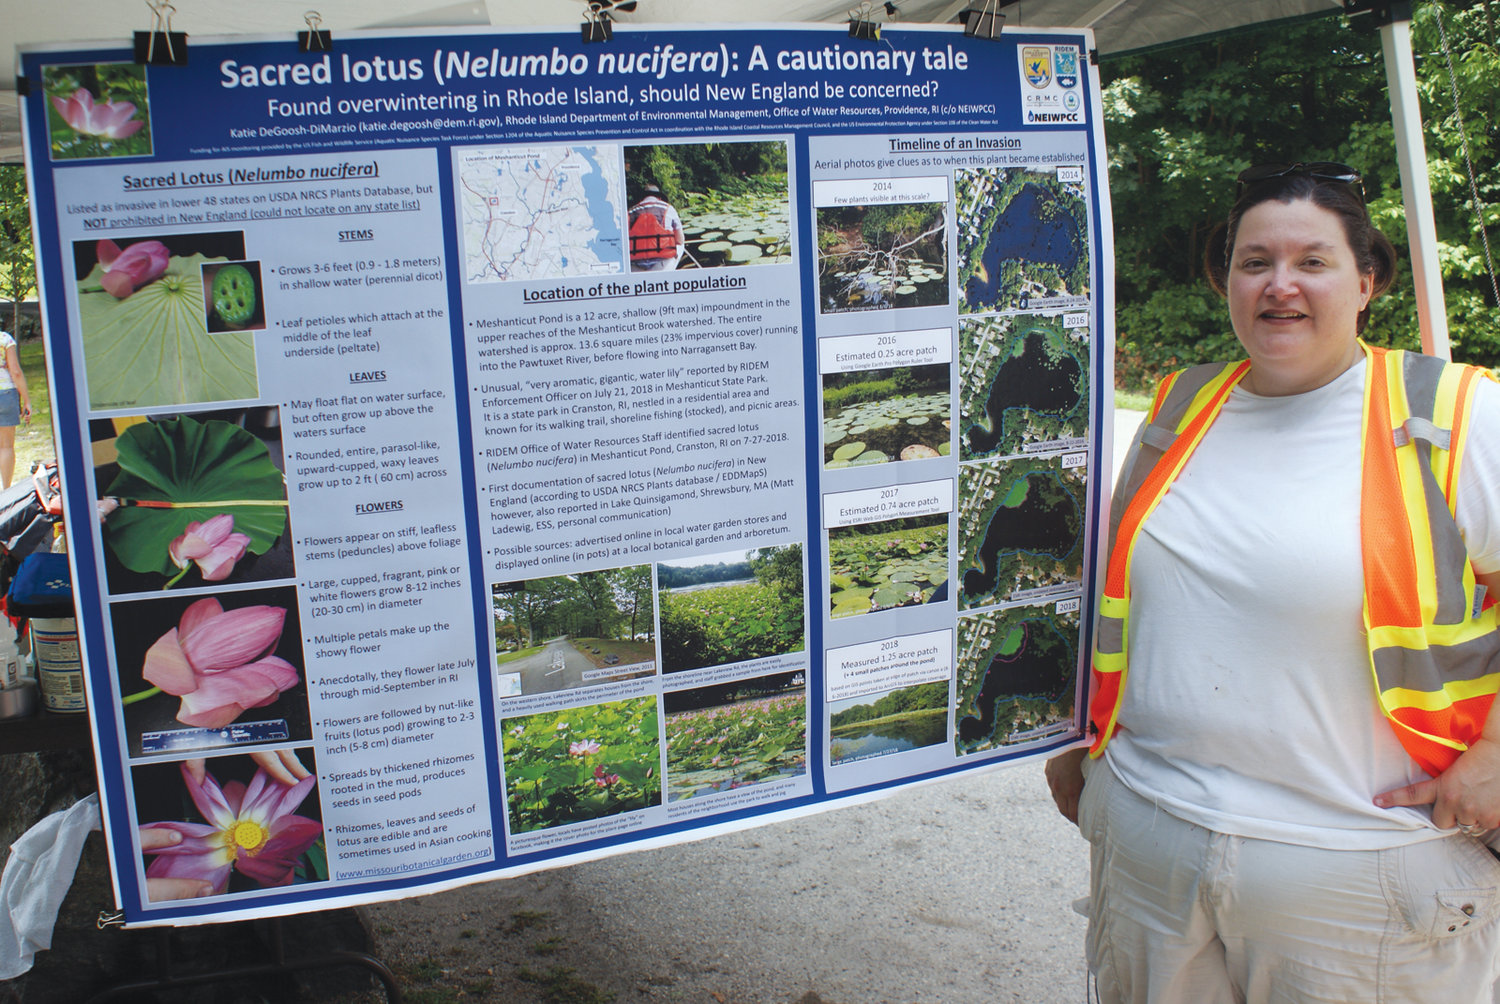 EDUCATIONAL EVENT: Katie DeGoosh-DiMarzio, a project coordinator with the Rhode Island Department of Environmental Management, was on hand to explain the issues surrounding the sacred lotus patch at Meshanticut Pond.